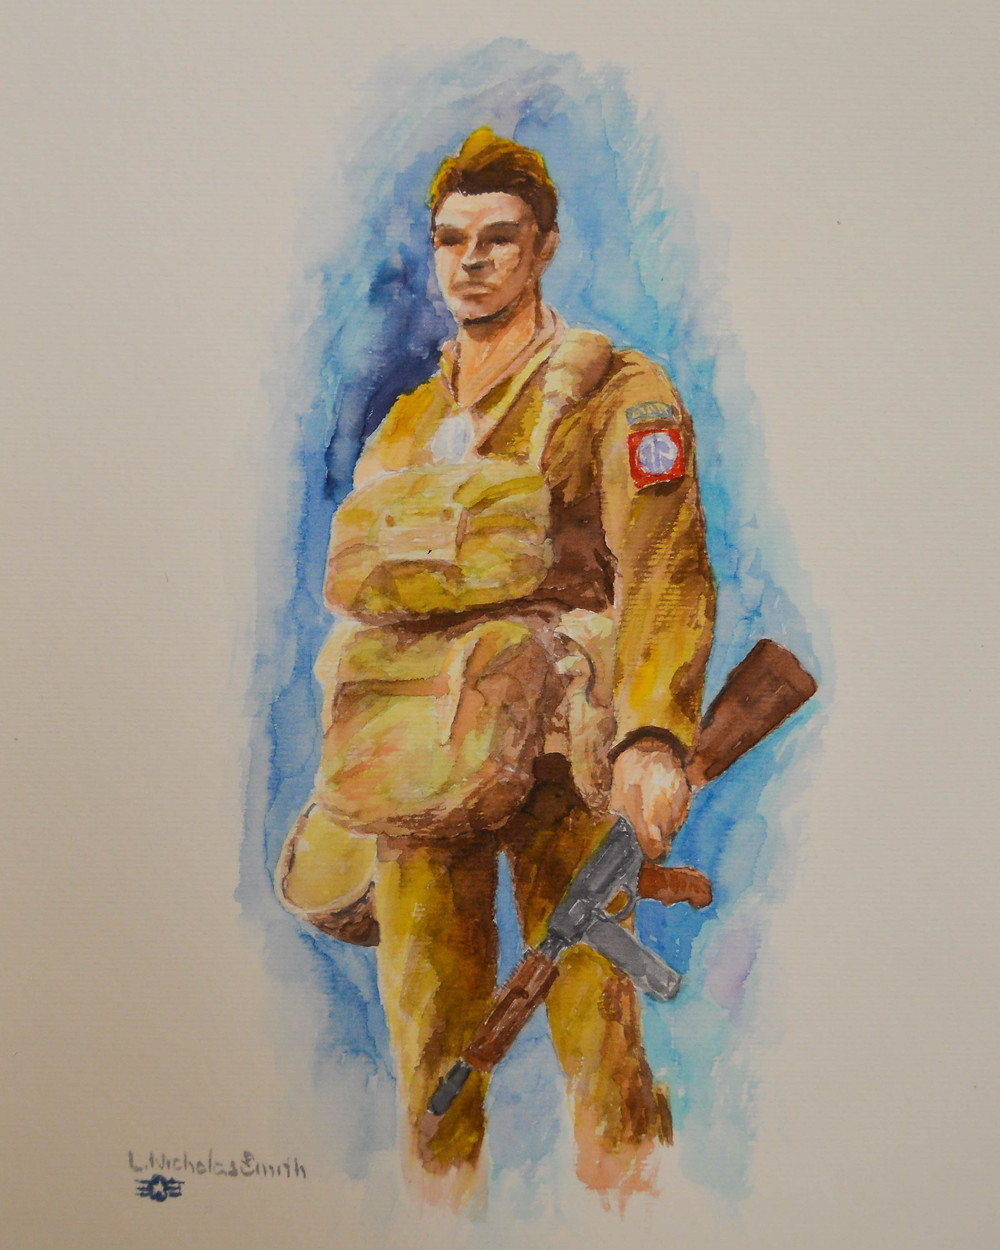 82nd Airborne Paratrooper, US Army, watercolor painting by L. Nicholas Smith